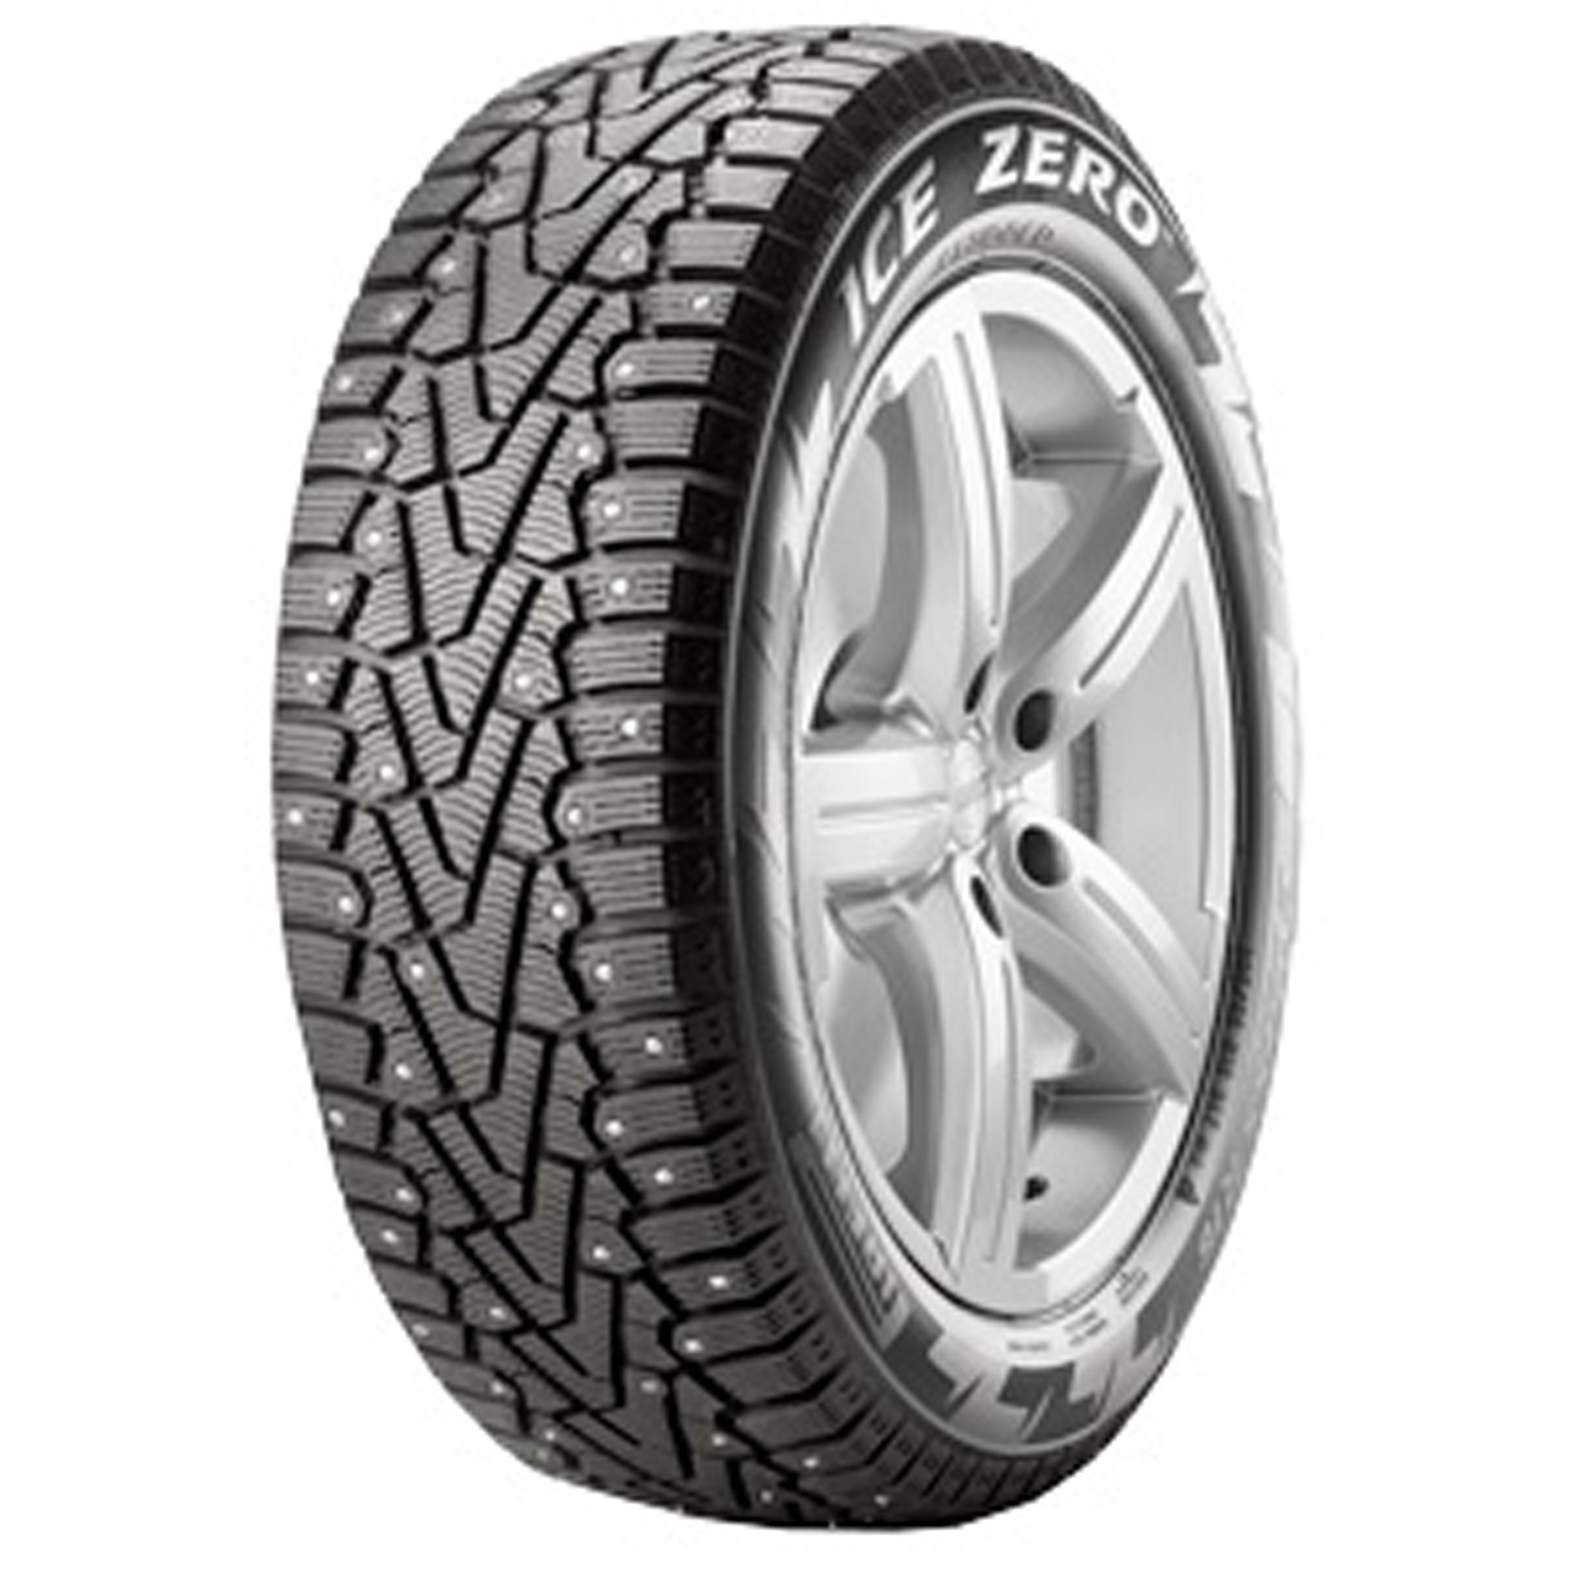 Pirelli Winter Ice Zero Studded tire - angle